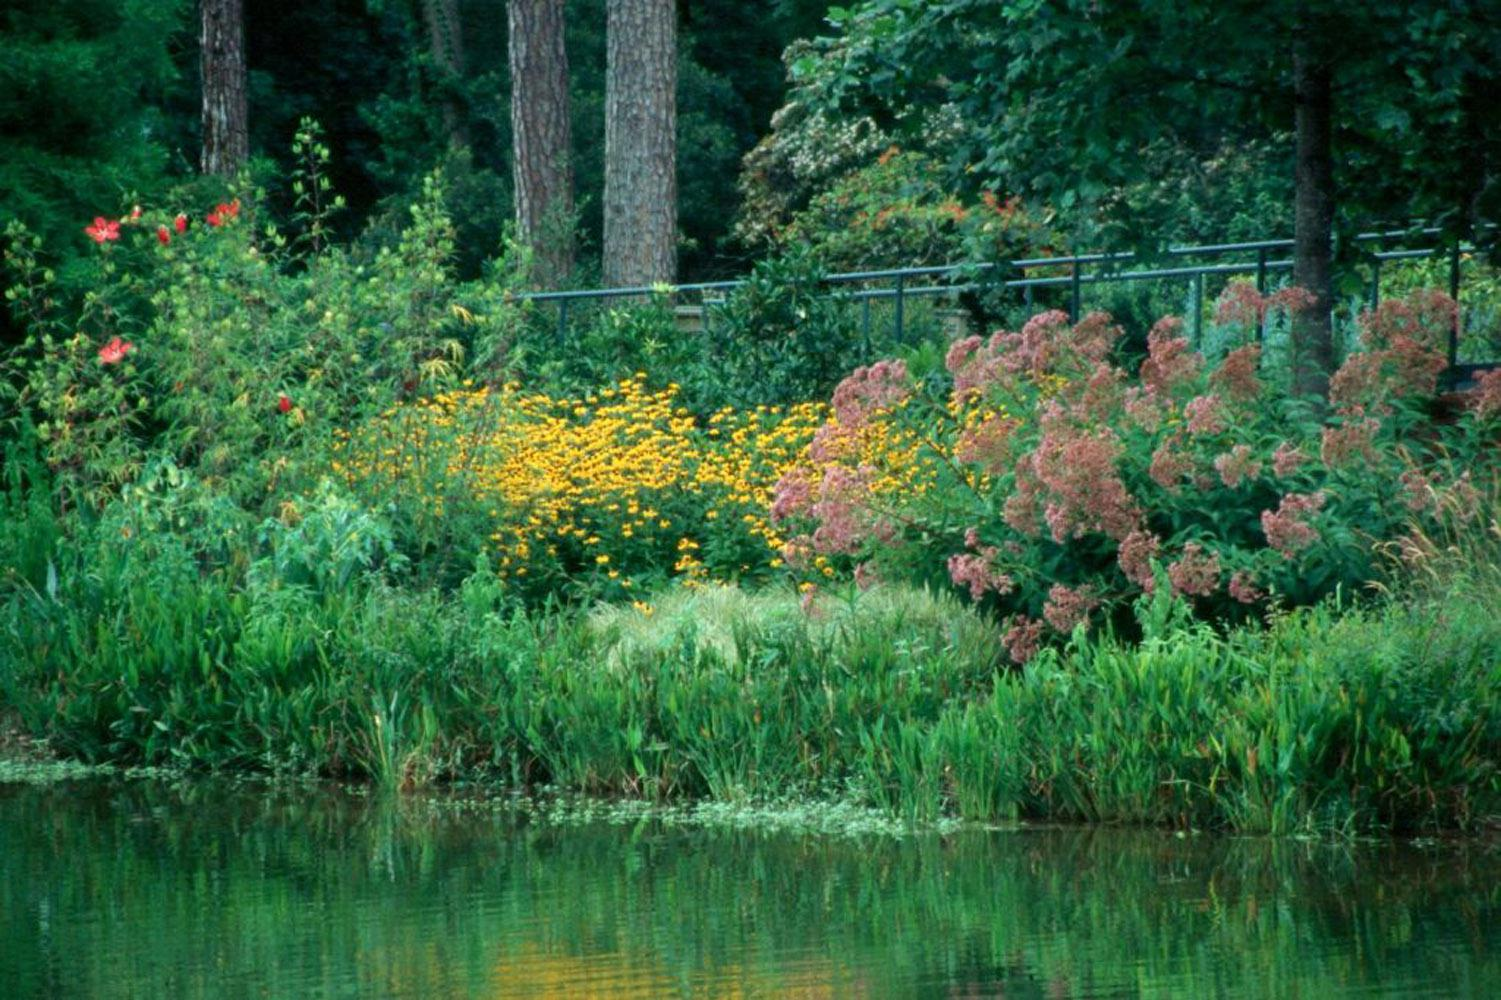 Joe Pye weed and Goldsturm rudbeckia partner well in this lakeside planting, looking impressive even from a distance.